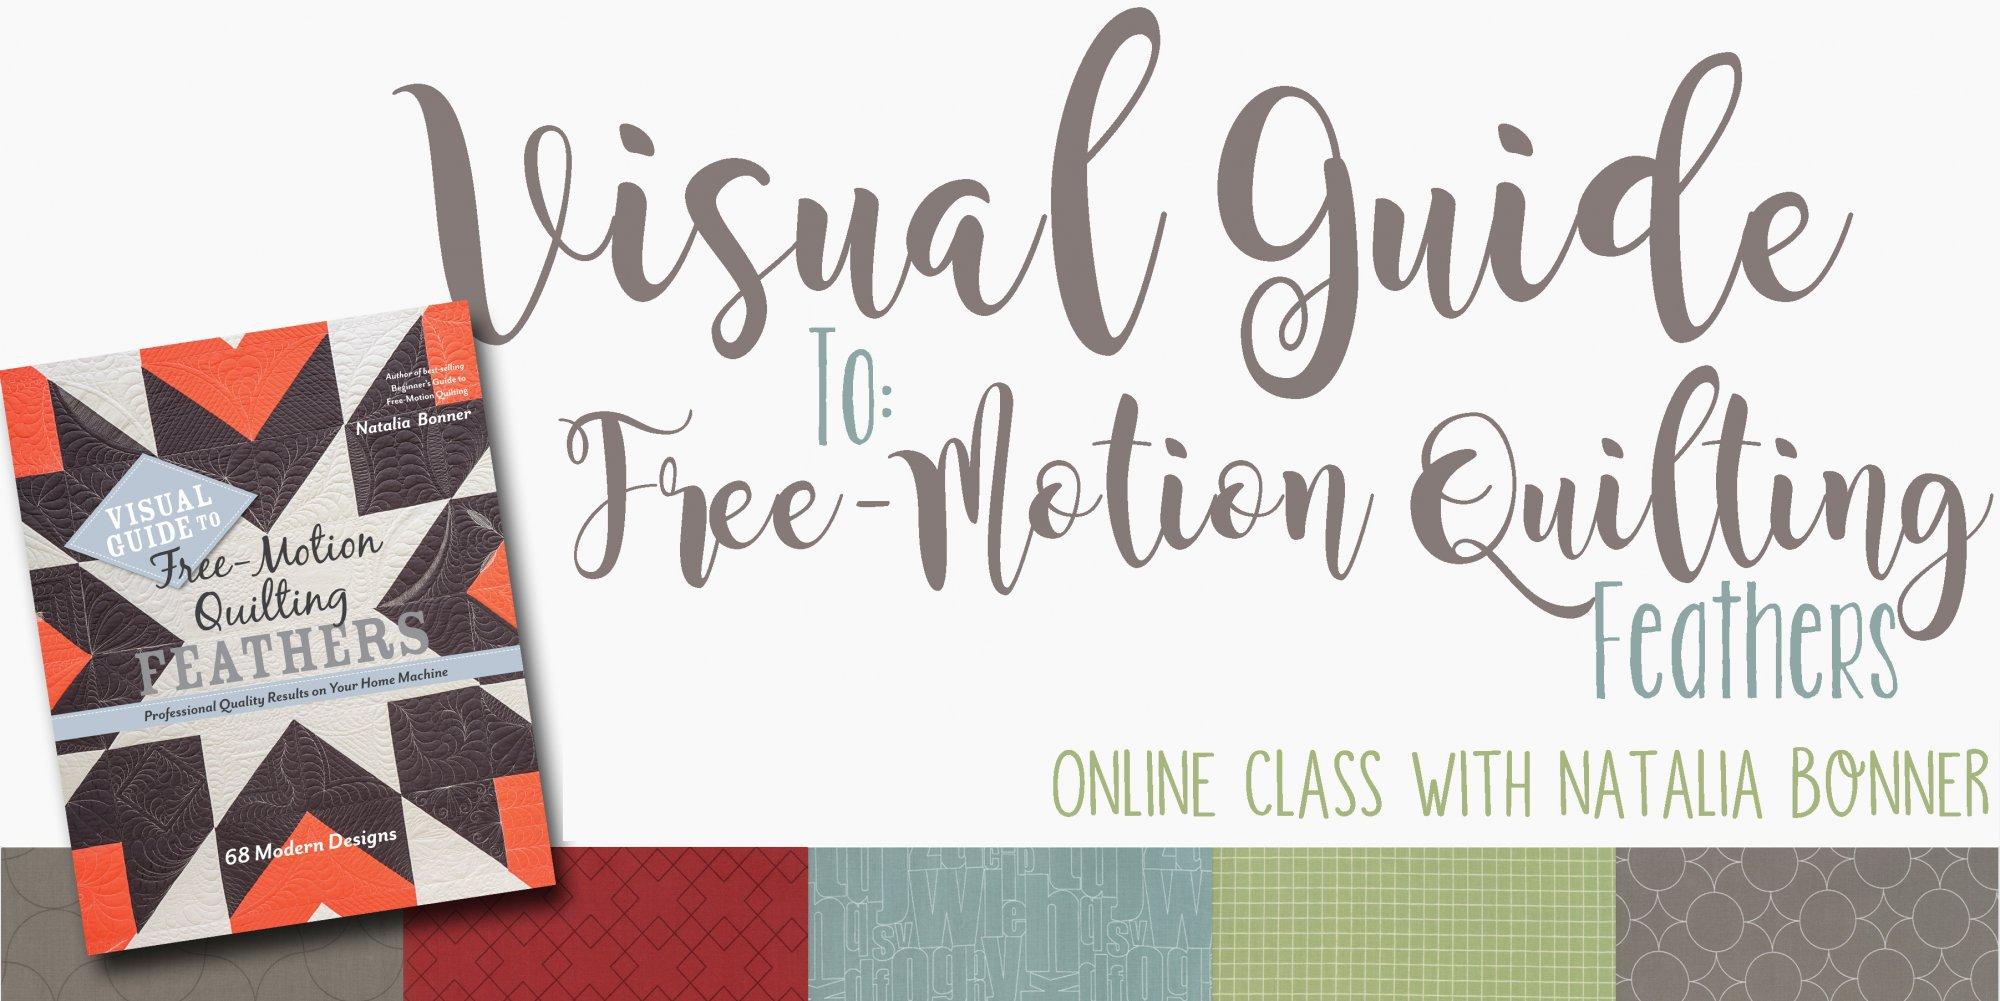 Visual Guide to Free-Motion Quilting Feathers - Online Class with Natalia Bonner